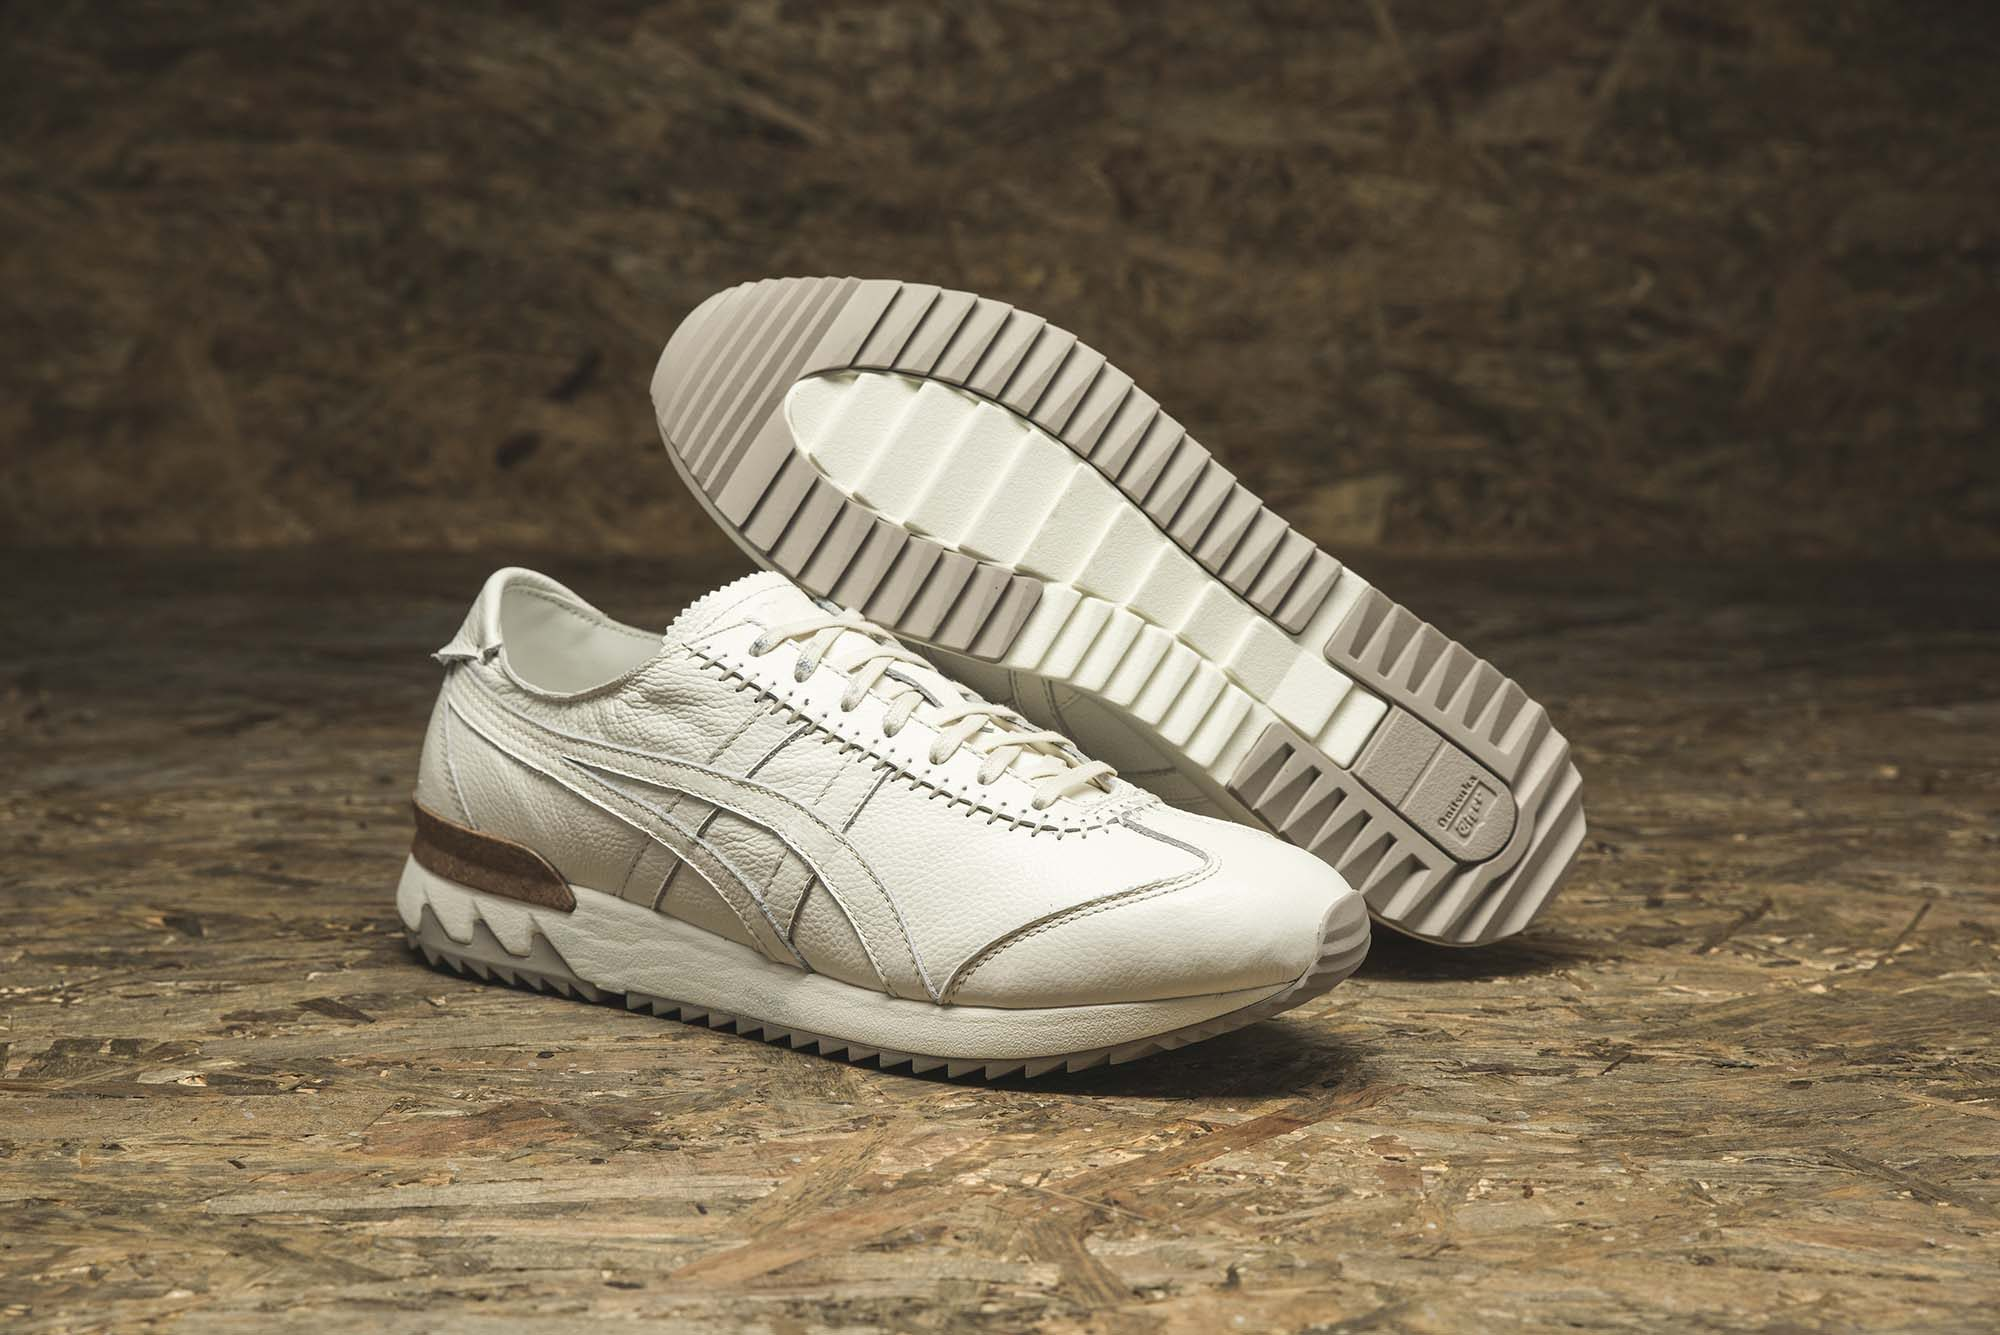 onitsuka-tiger-release-new-tiger-mhs-and-saga-series-25